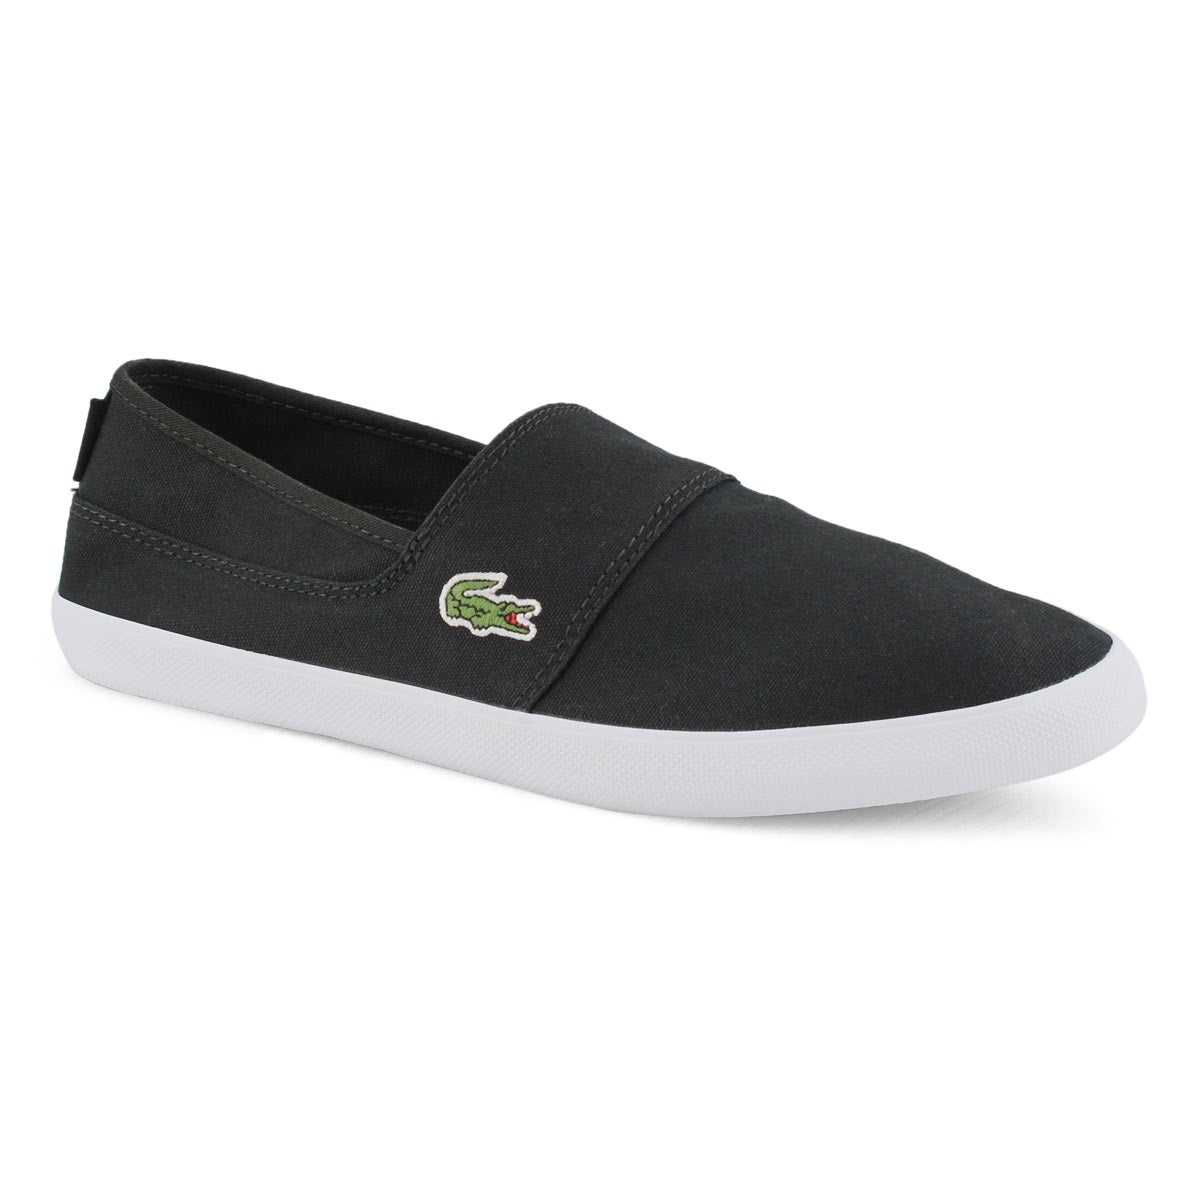 Men's MARICE BL 2 black casual slip ons